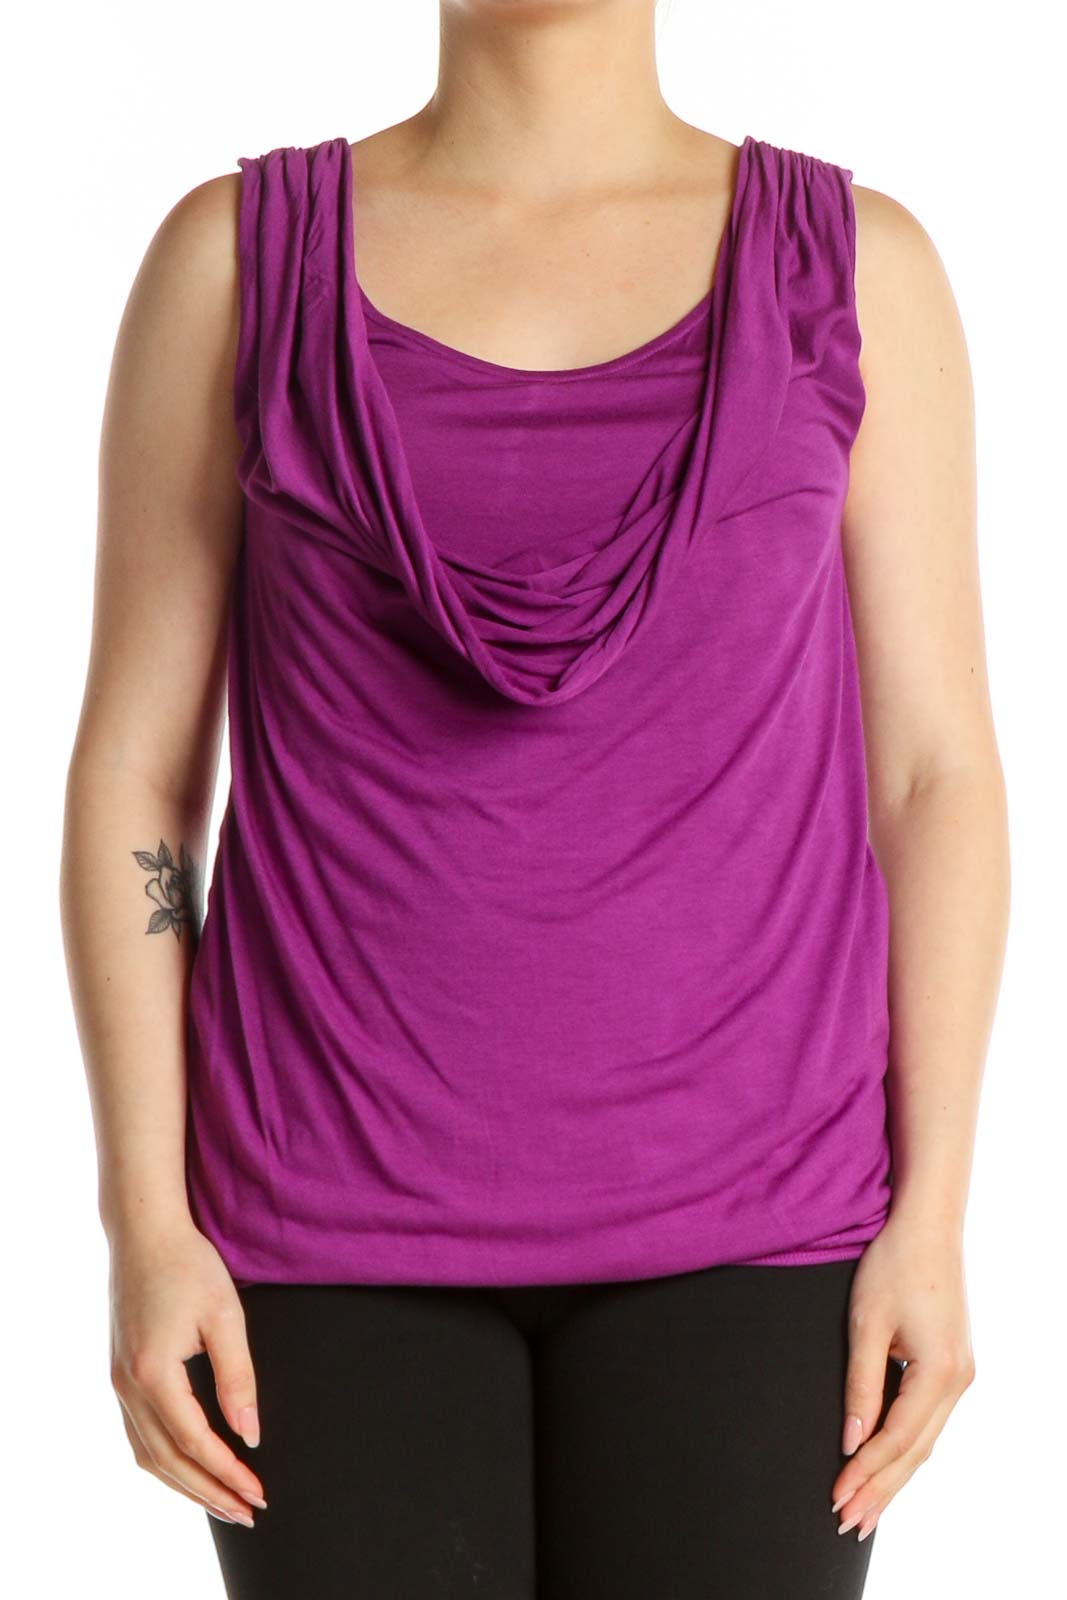 Pink Solid Chic Tank Top Front